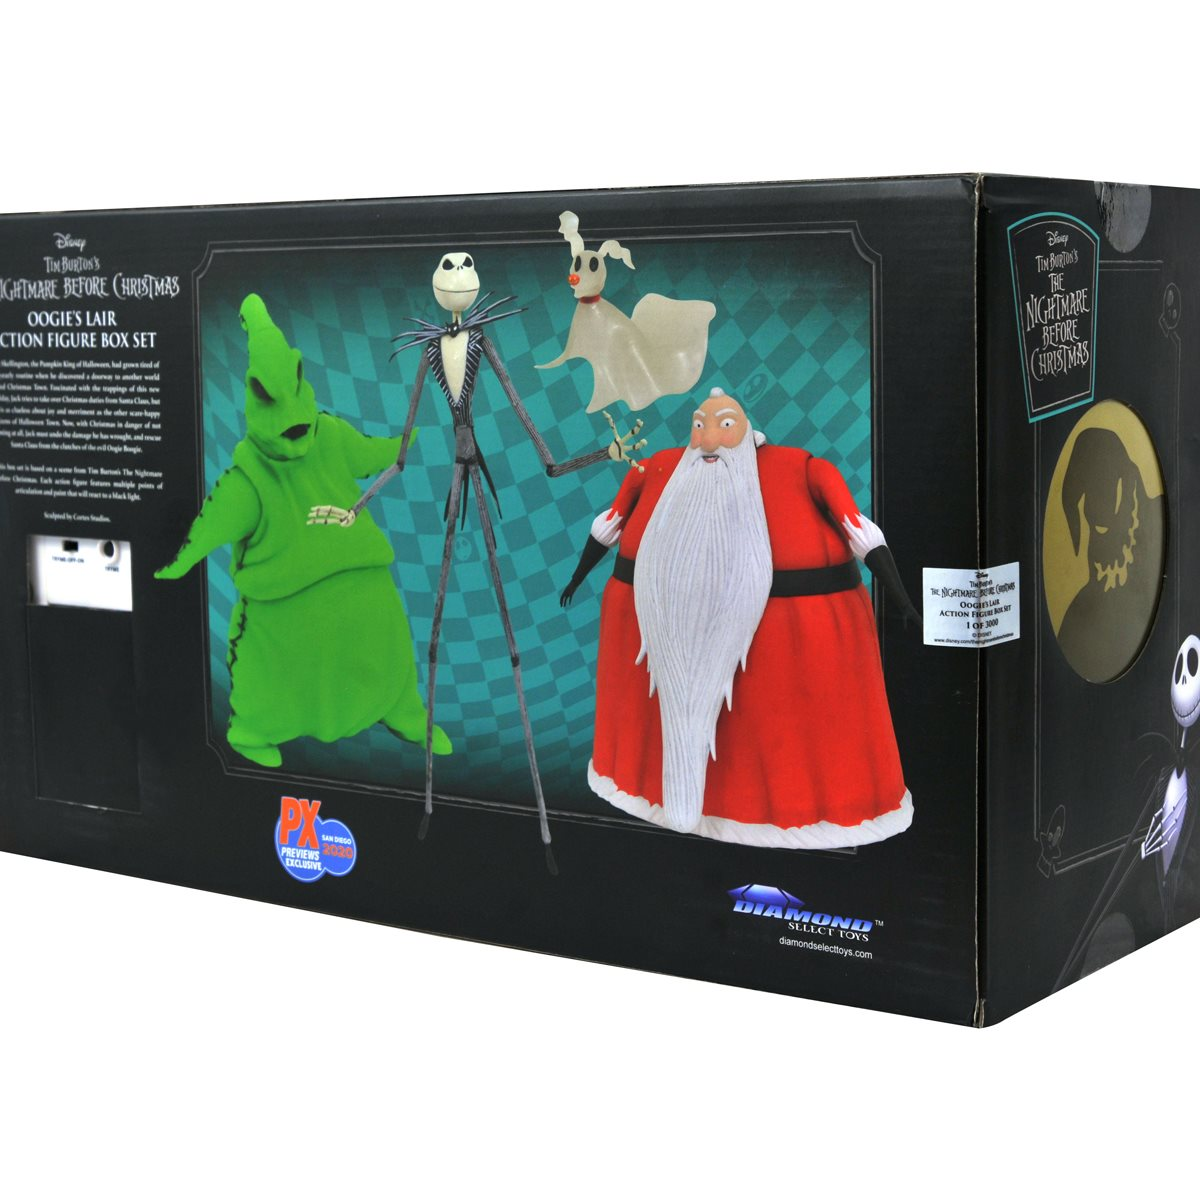 Nightmare Before Christmas Lighted Action Figure Box Set   San